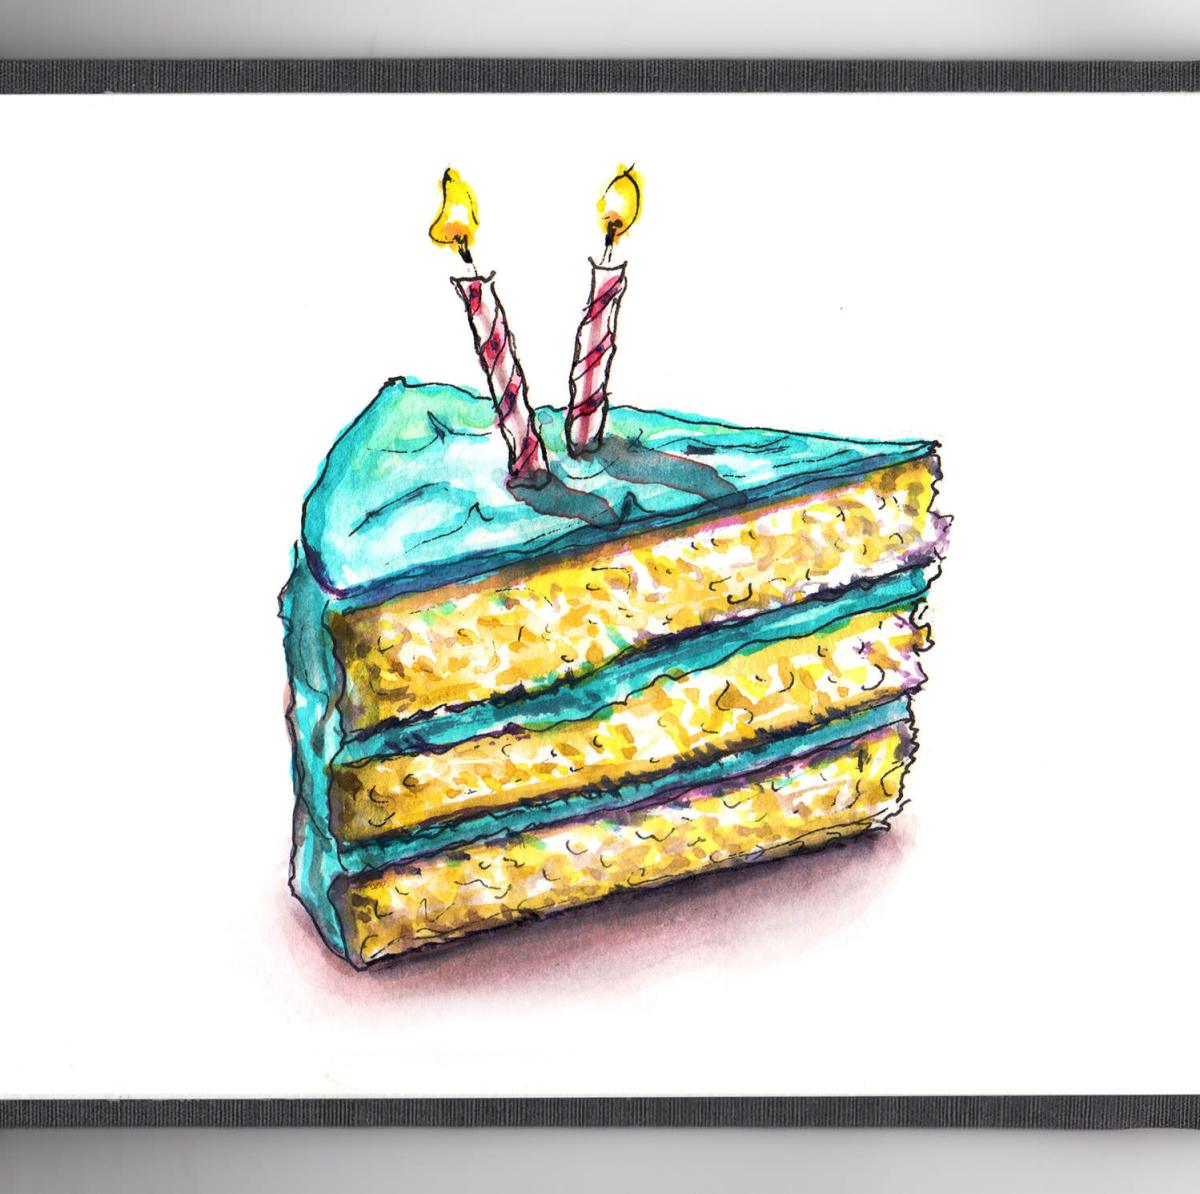 Day 30 - #WorldWatercolorGroup #WorldWatercolorMonth - Doodlewash Turning Two In July! - Birthday Cake With Two Candles - #doodlewash